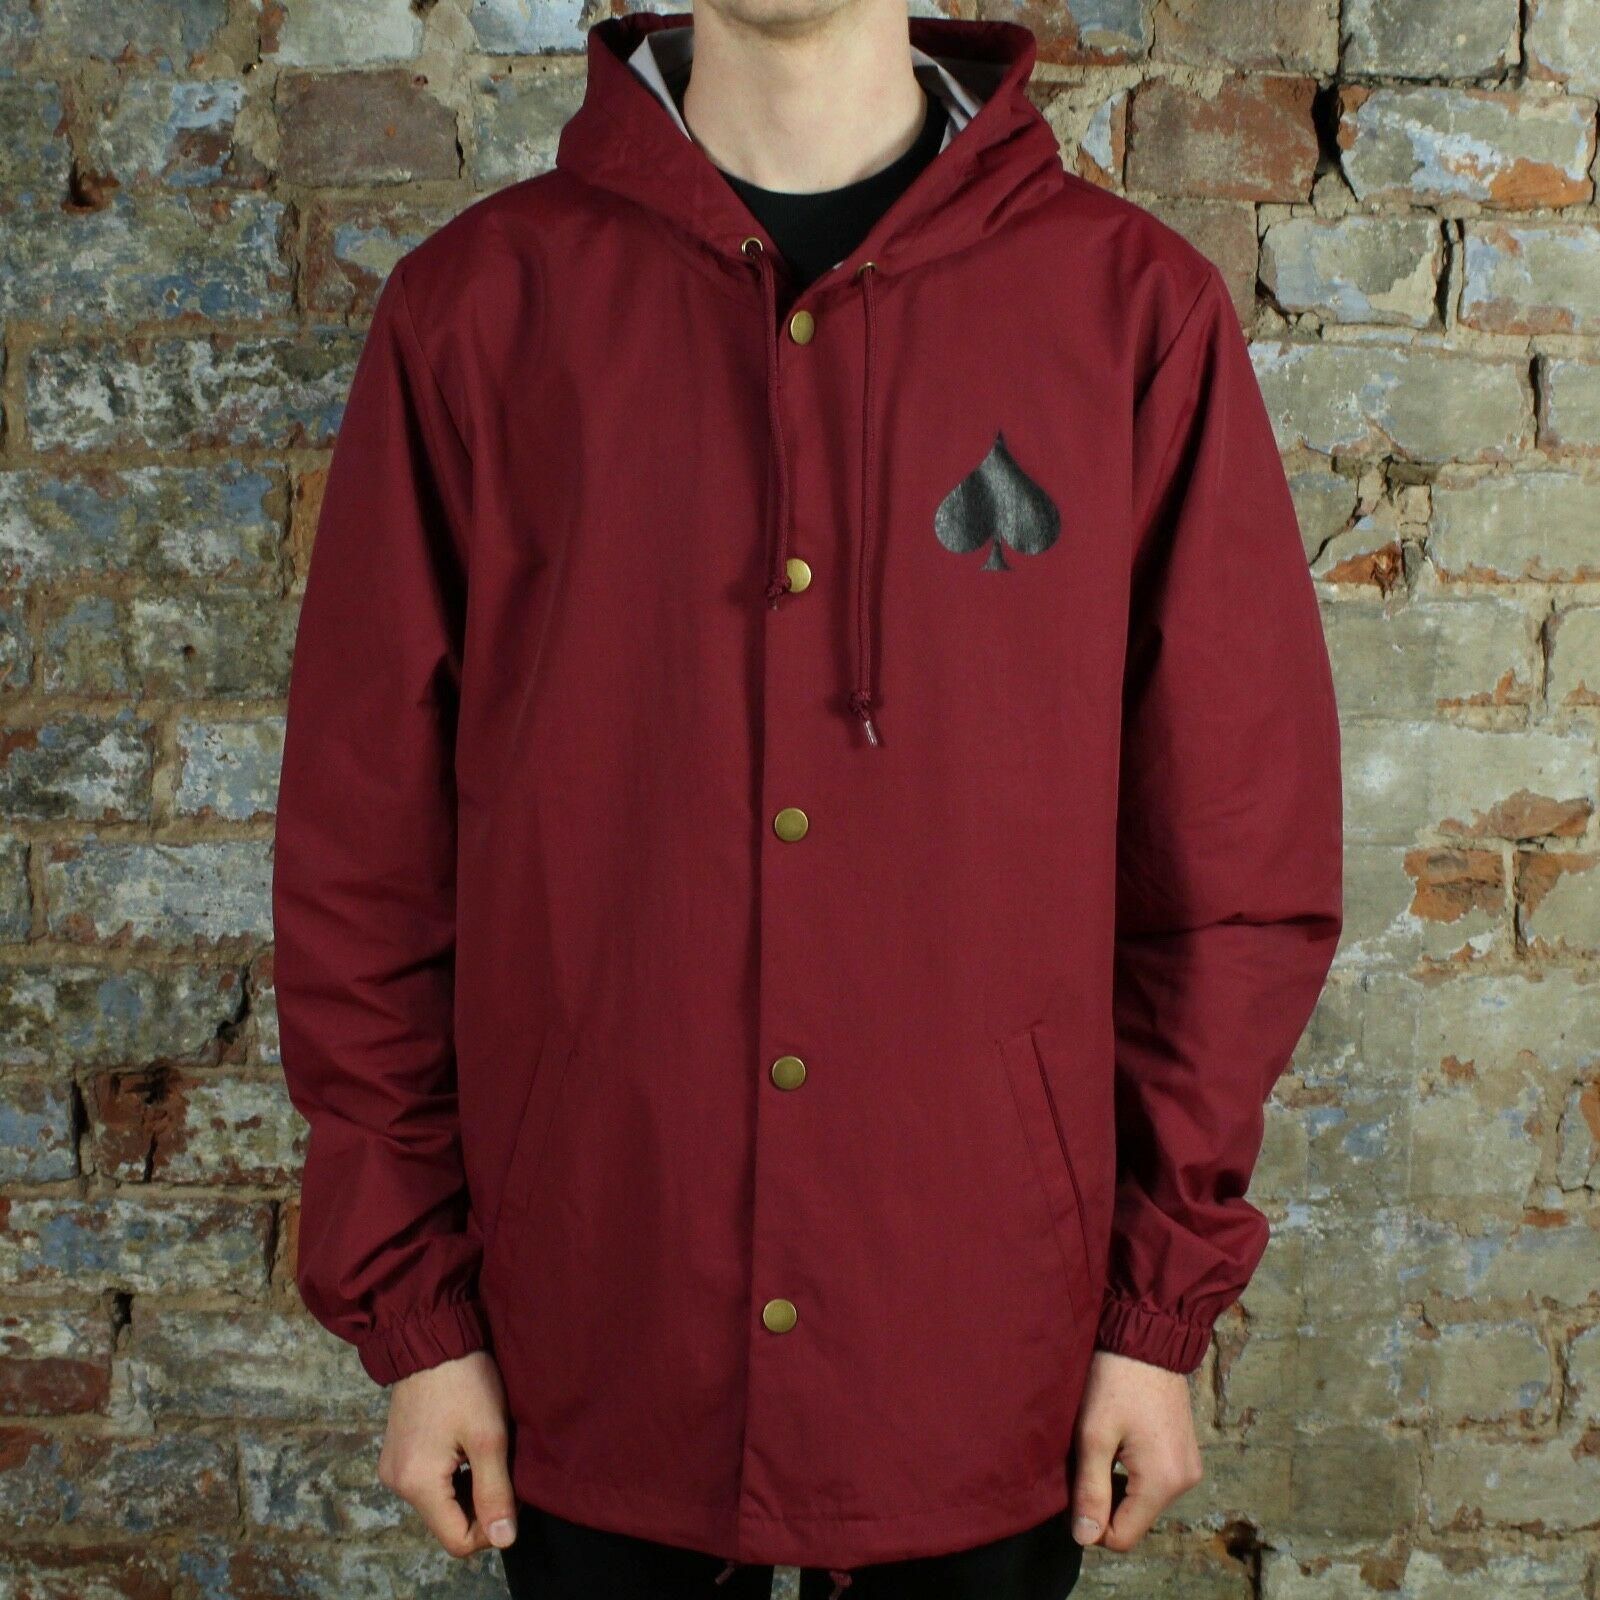 e228b8658ef5 Details about Thrasher New Oath Coach Jacket Coat – Cardinal Brand New in  size S,M,L